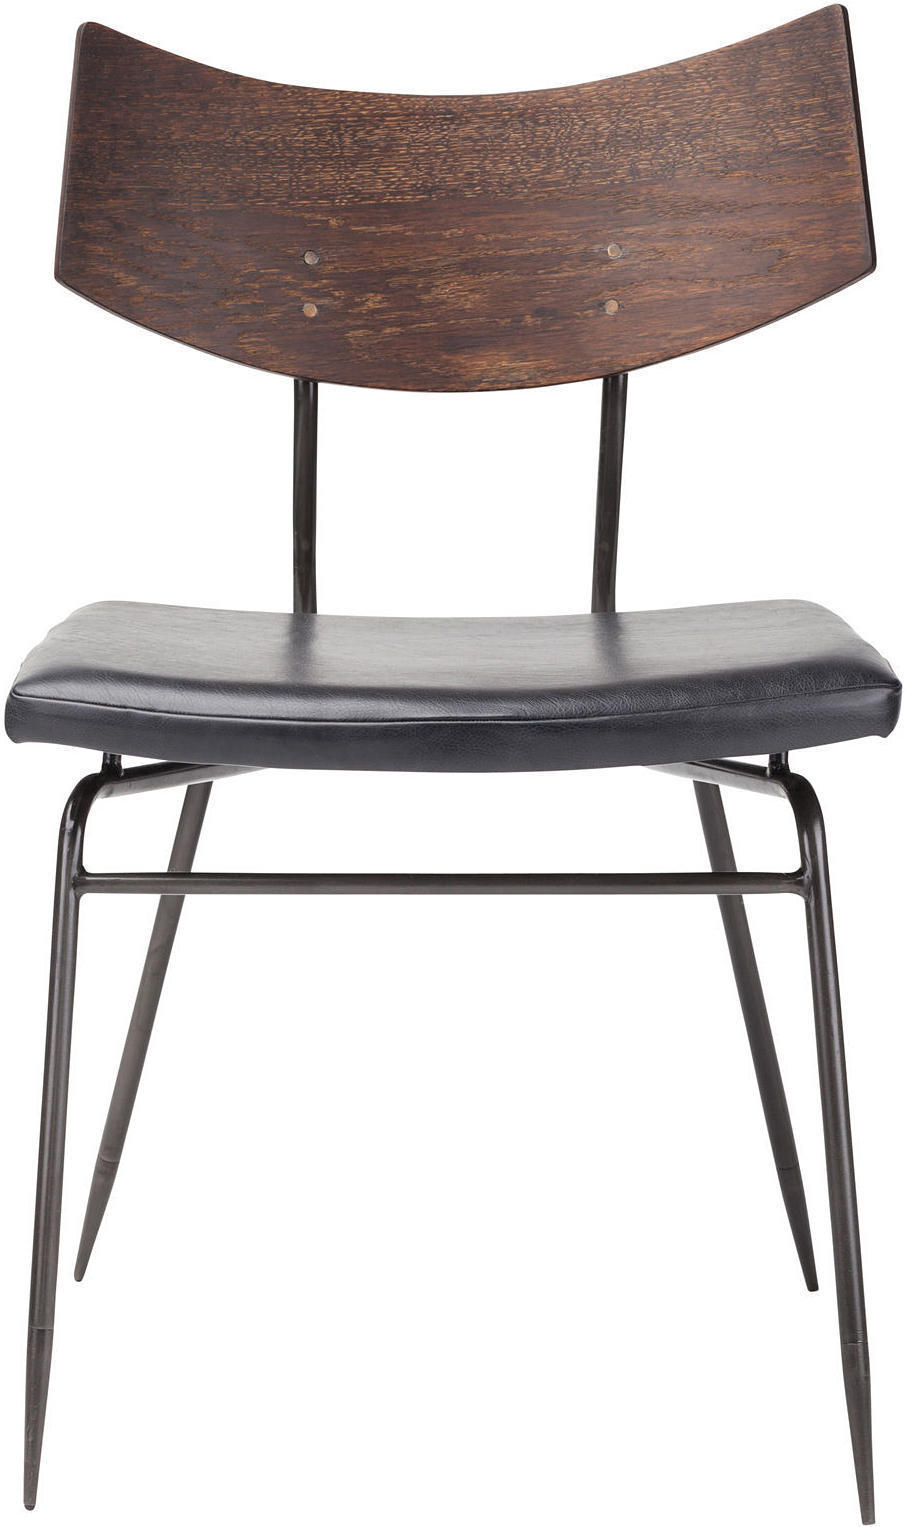 side view of the soli dining chair